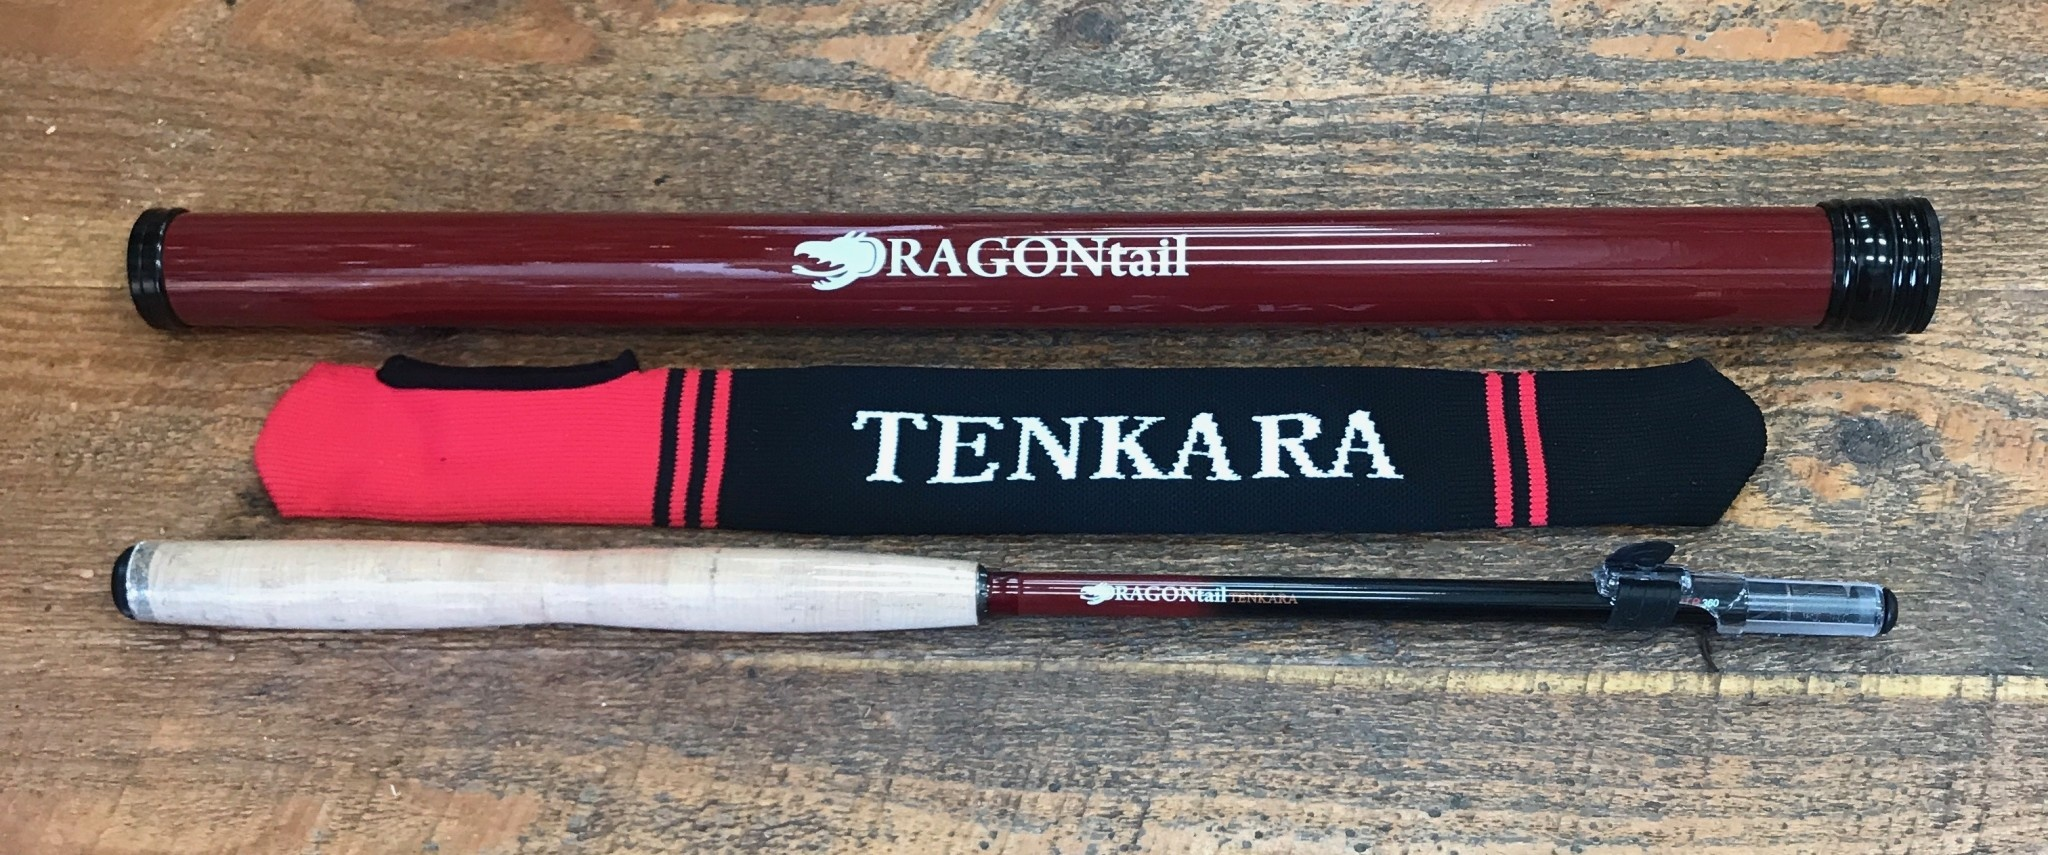 Dragontail Tenkara 12' Shadowfire